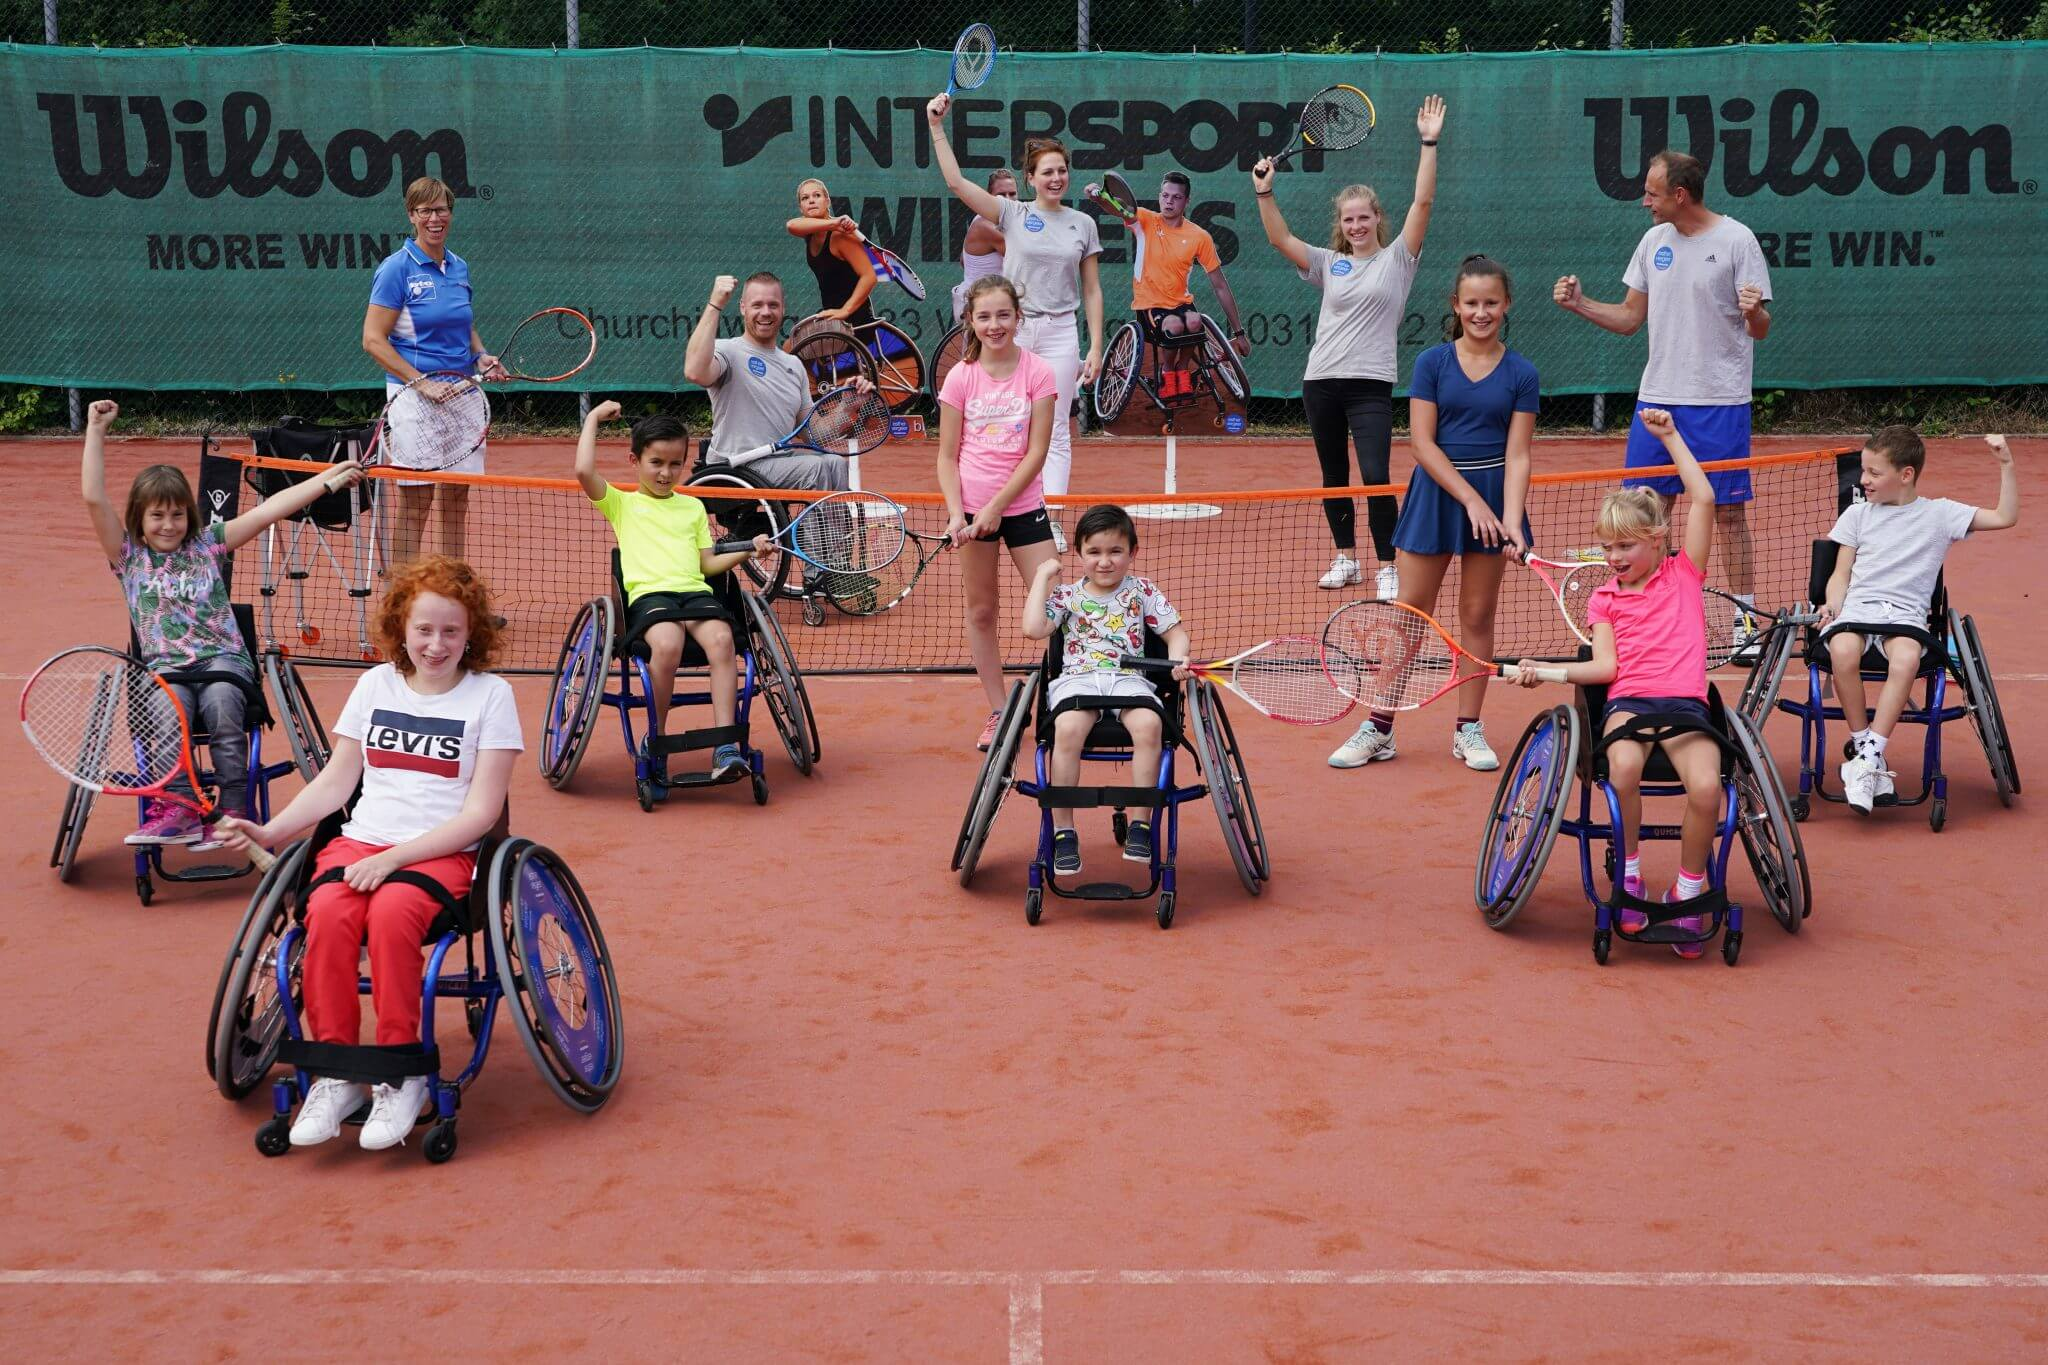 Rolstoeltennis-clinic Esther Vergeer Foundation